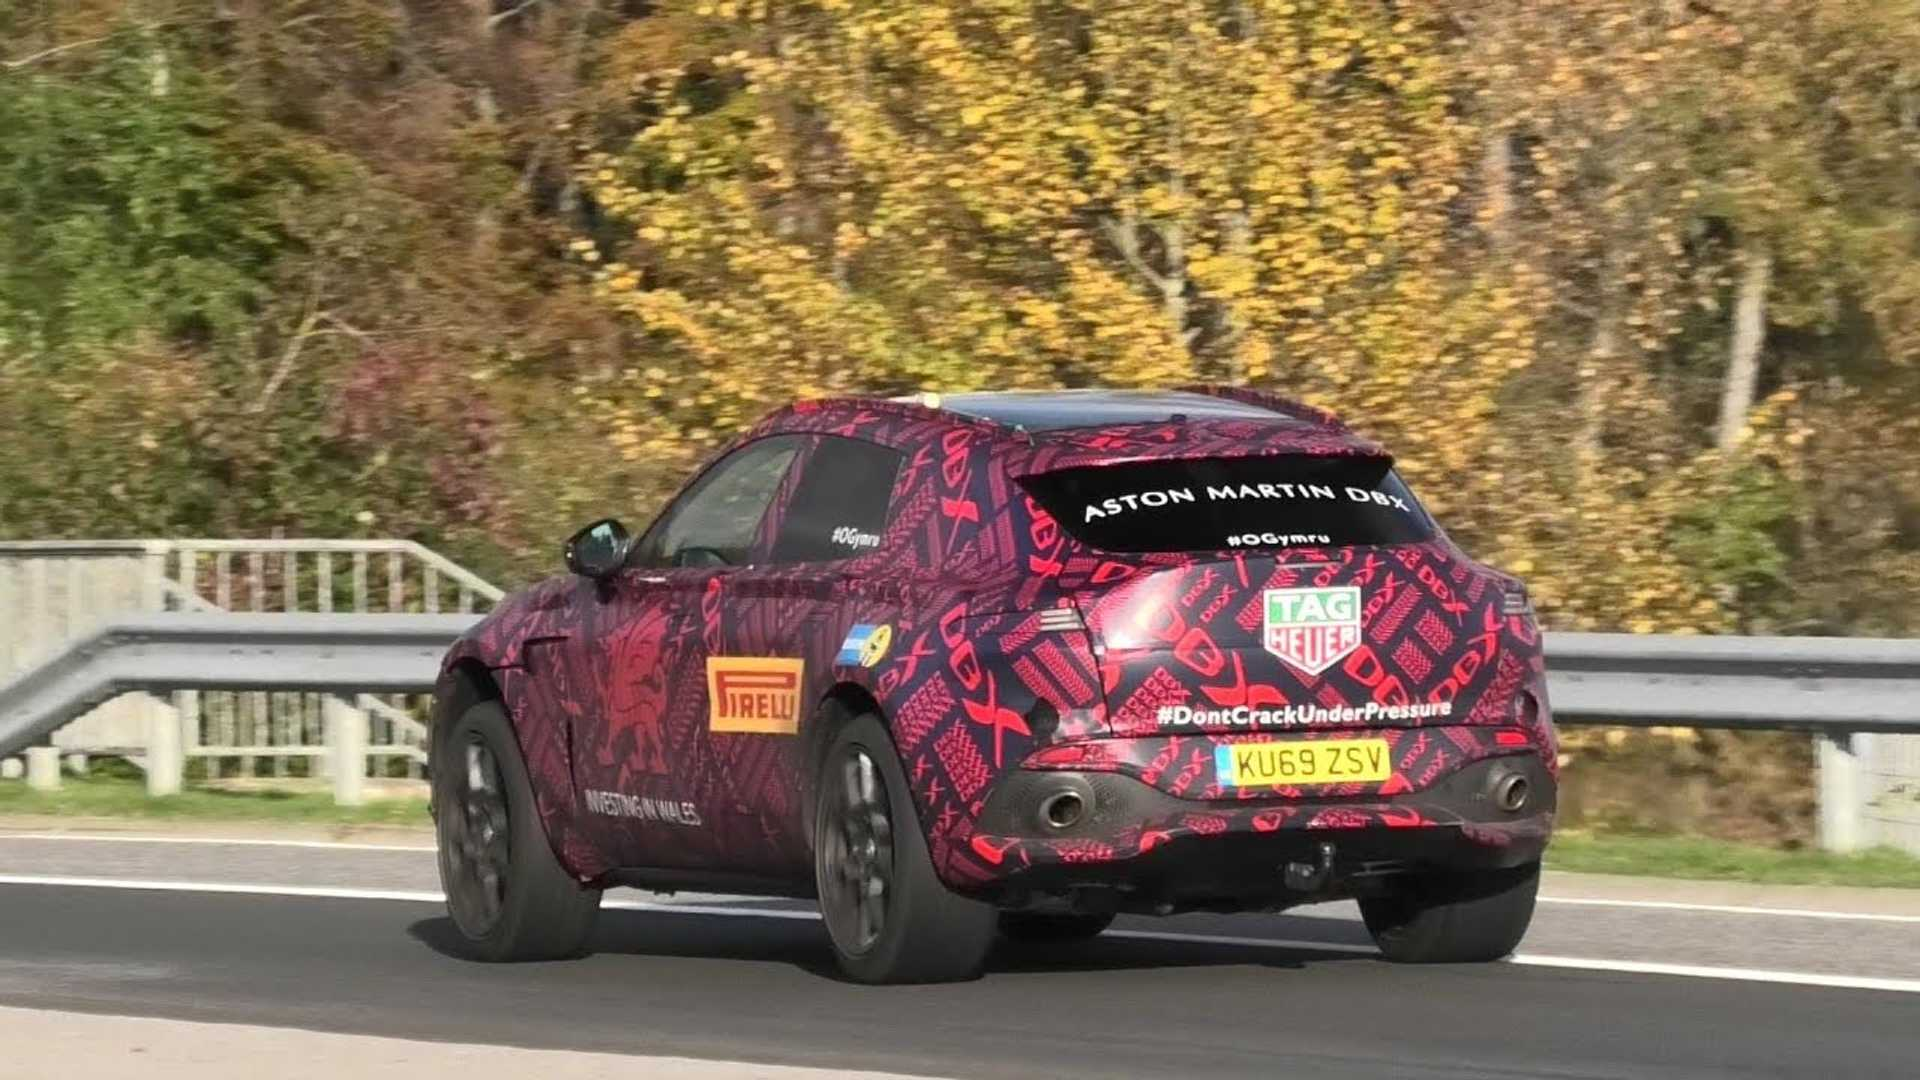 Aston Martin Dbx Spied Performing Final Testing Rounds Ahead Of Reveal